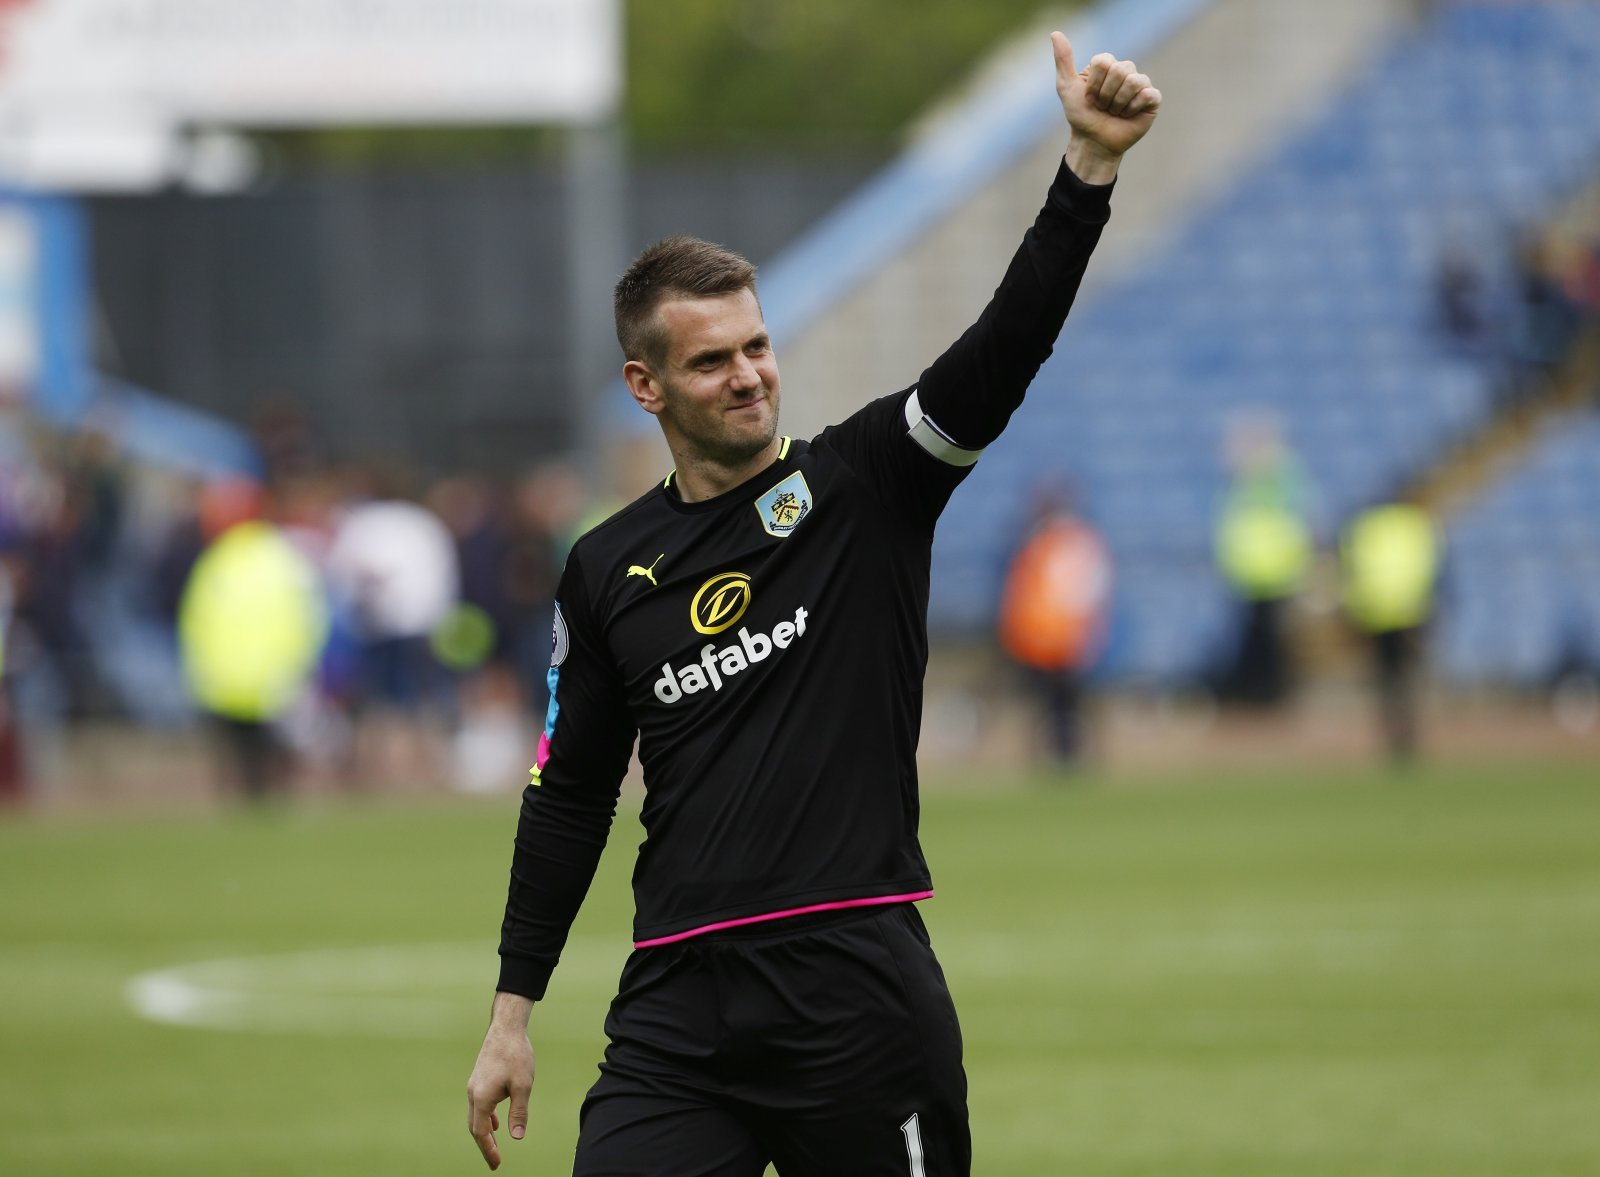 Tom Heaton deserving of England call-up for recent heroics